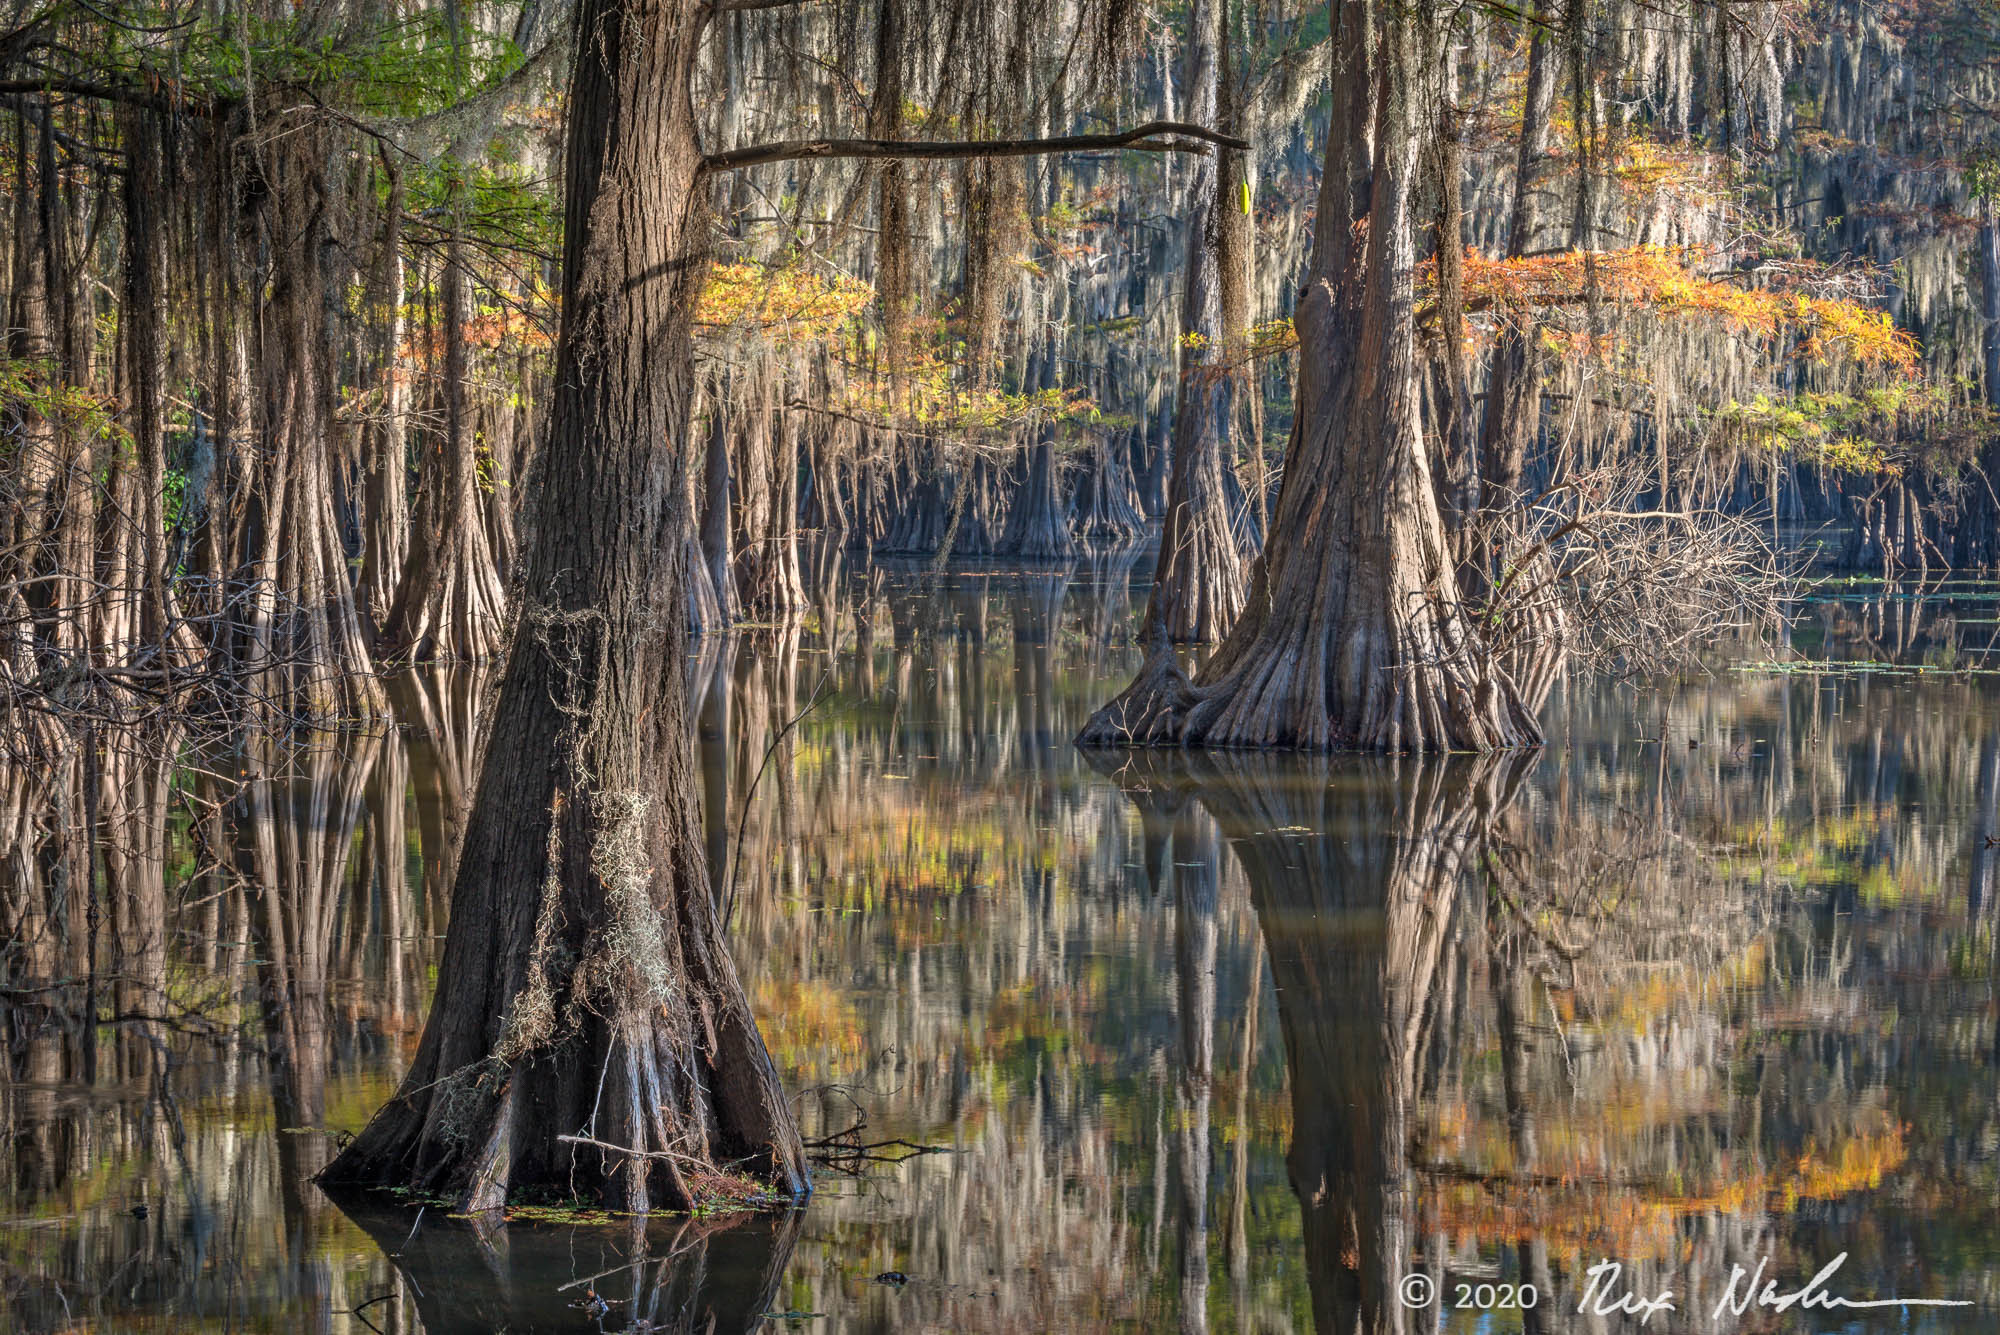 Hall of Mirrors - East Texas